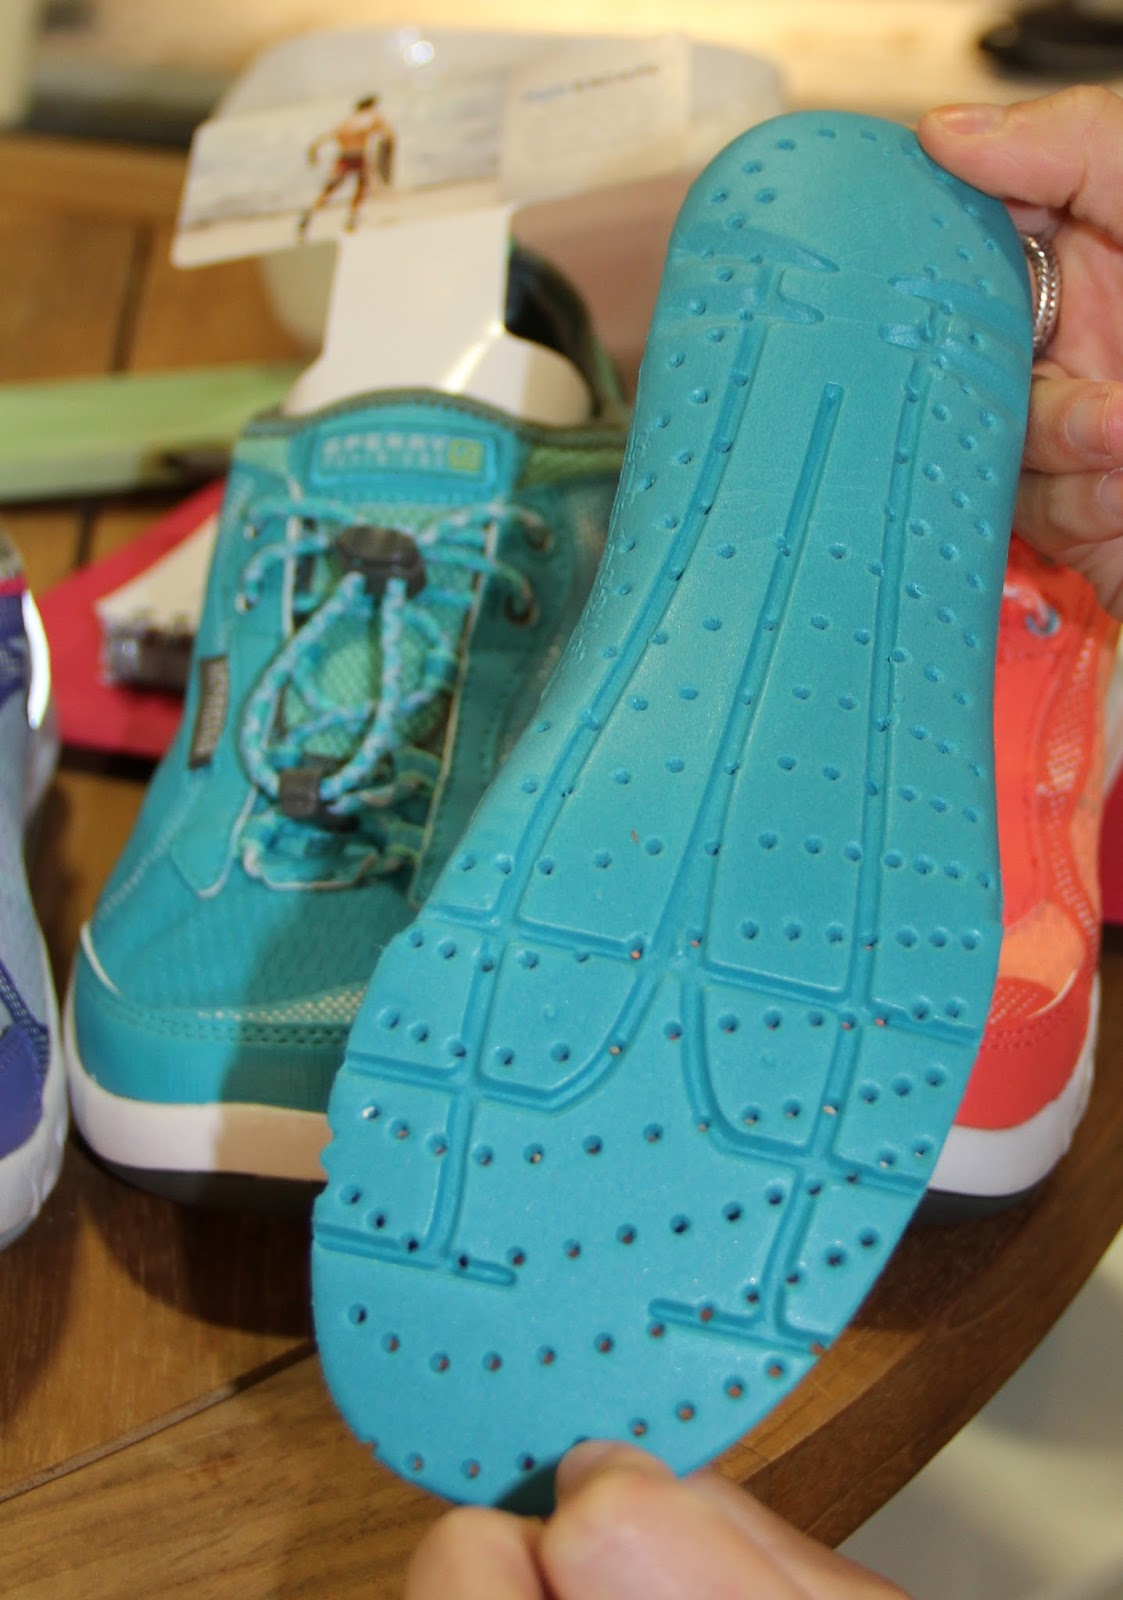 Up Ss15 water Sperry Stand Pb's Outdoor Trends Shoes Retailer Cool qGUMpzVS